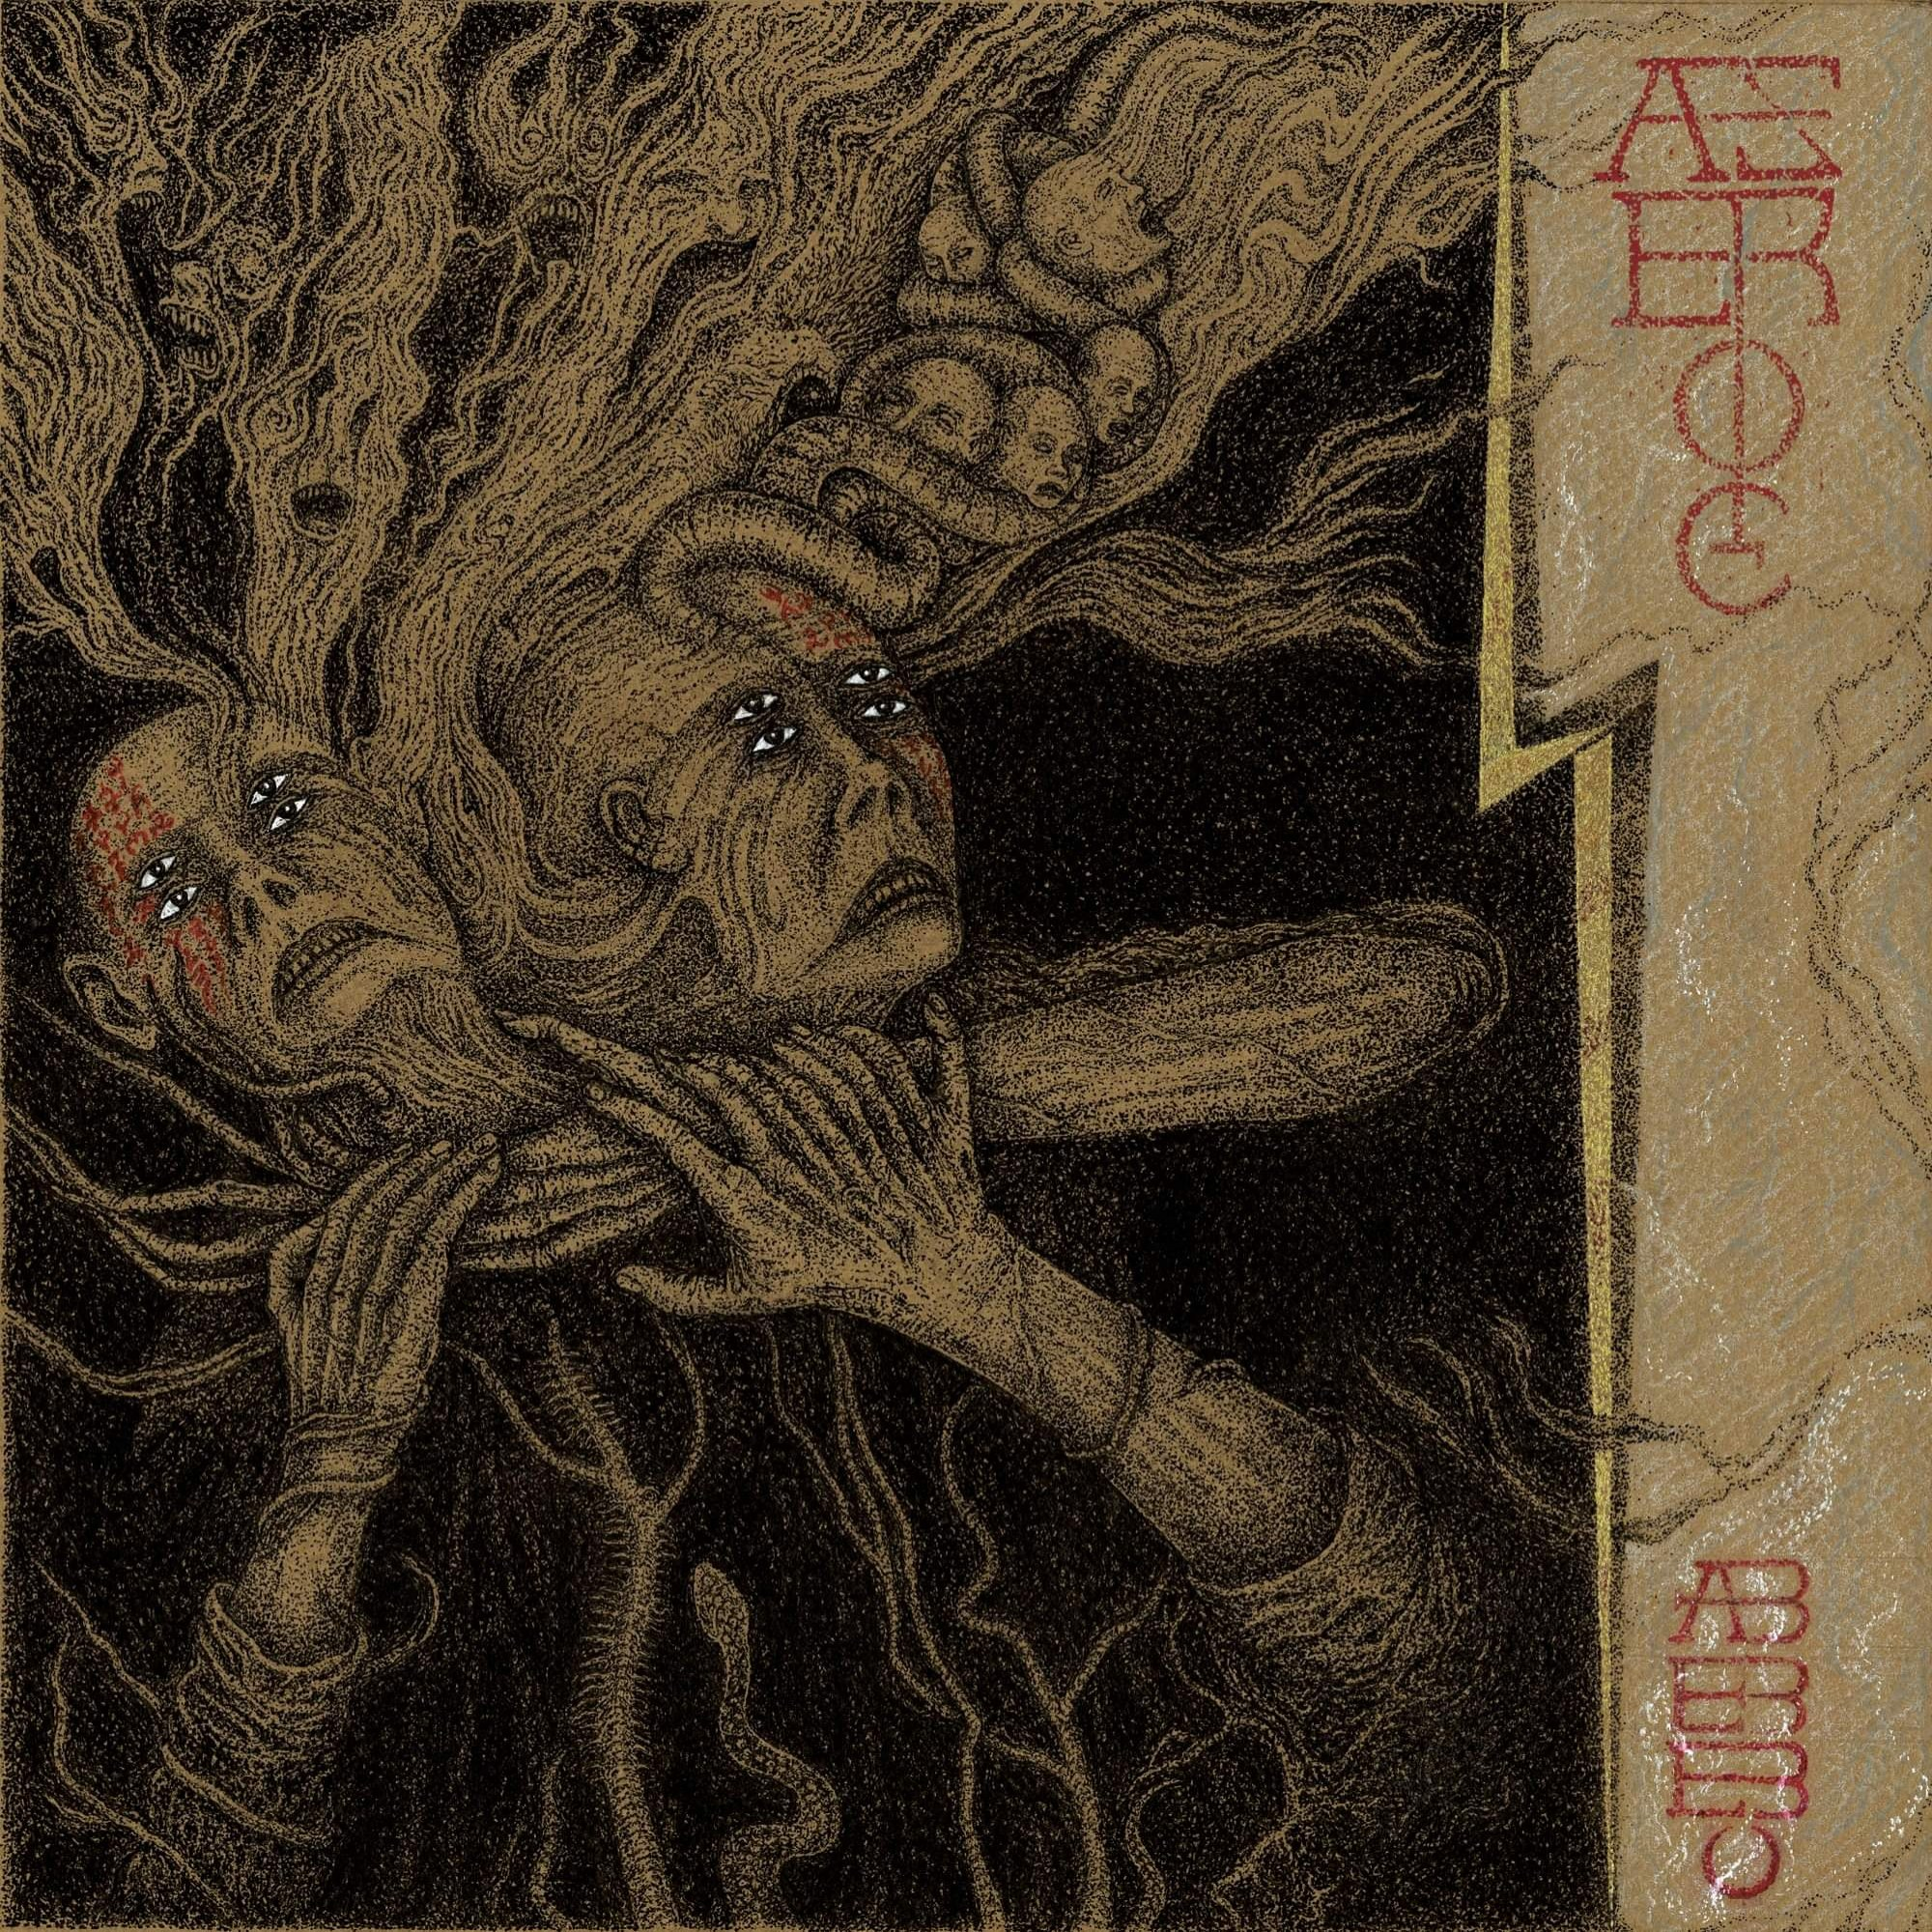 Review for Aseroe - Aseroe